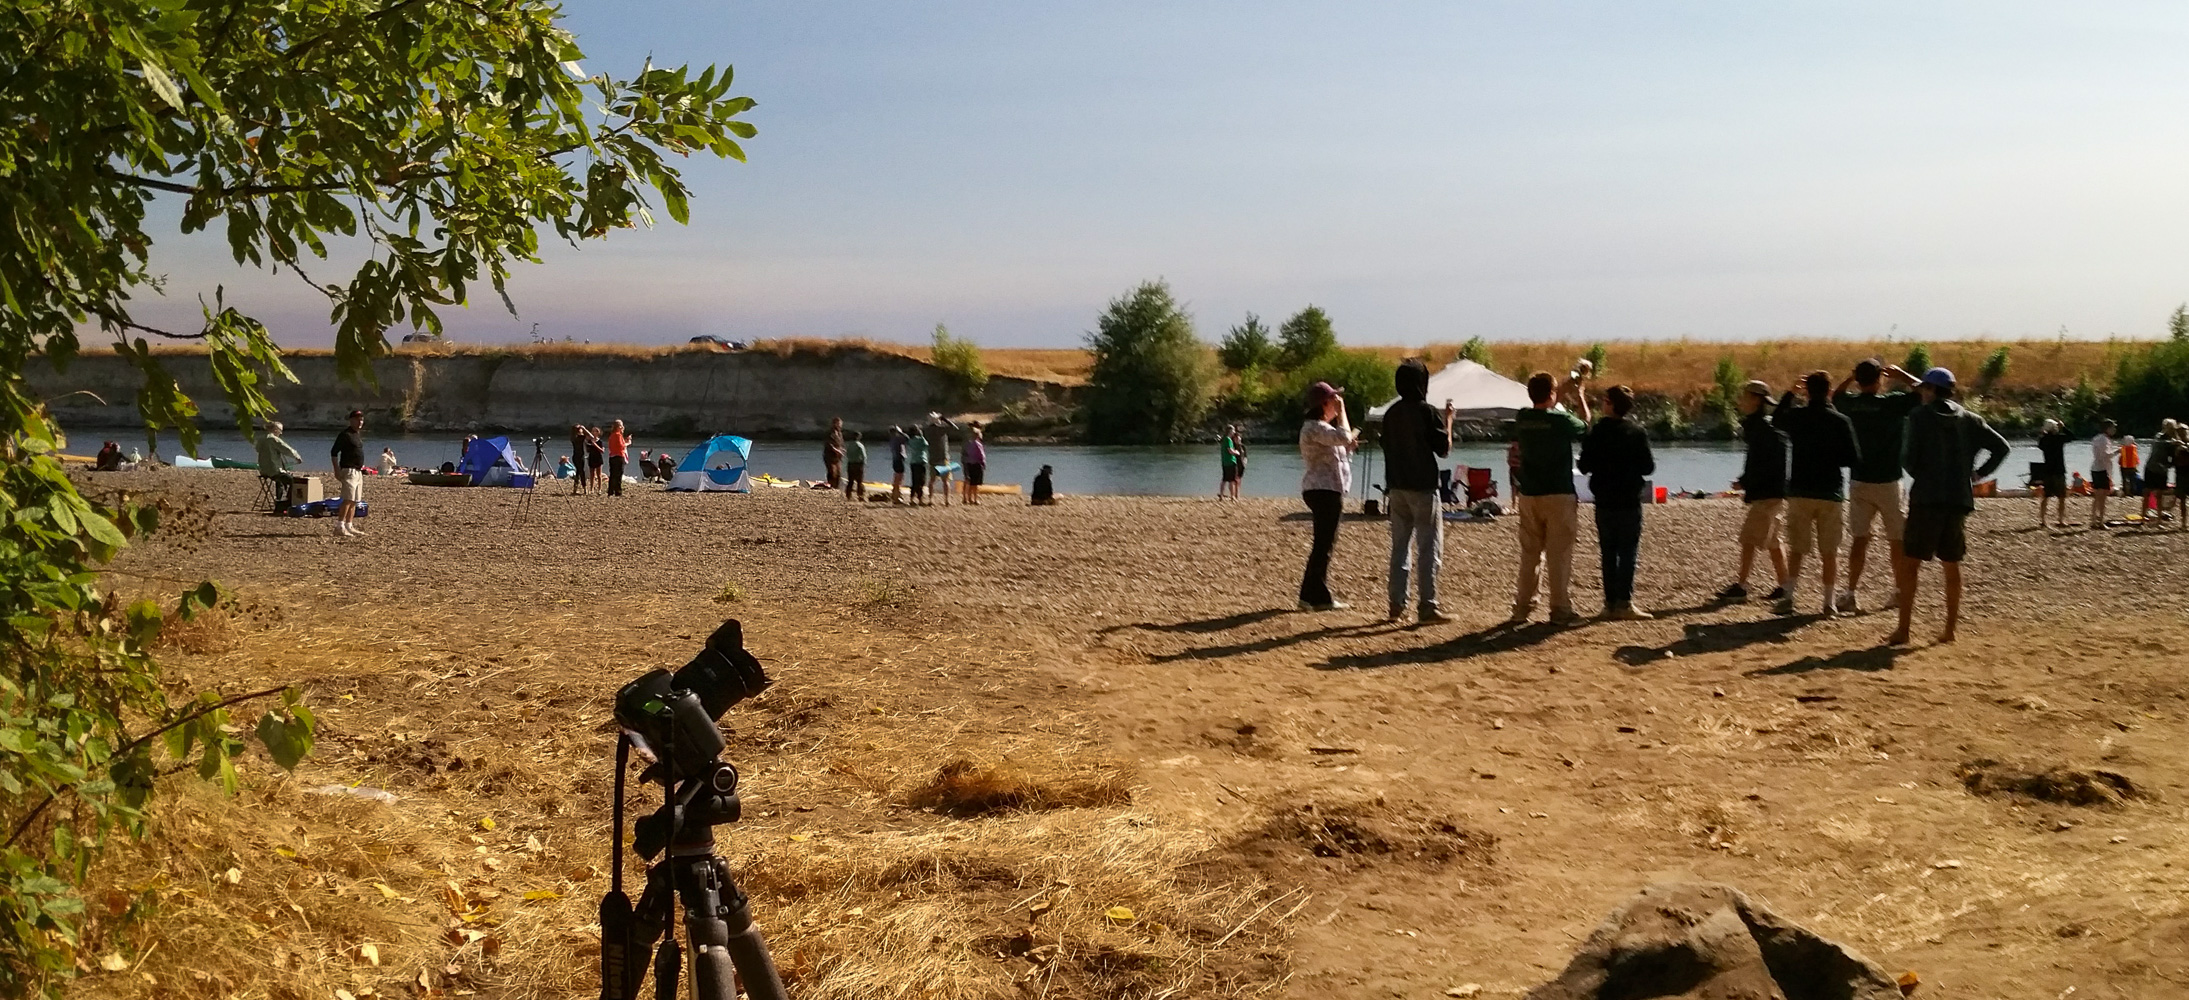 The crowd watching totality. I should not have been on autoexposure as this looks like daylight when it wasn't. Notice the electric cello player over on the left side. He was hired to provide background music for the paddlers.